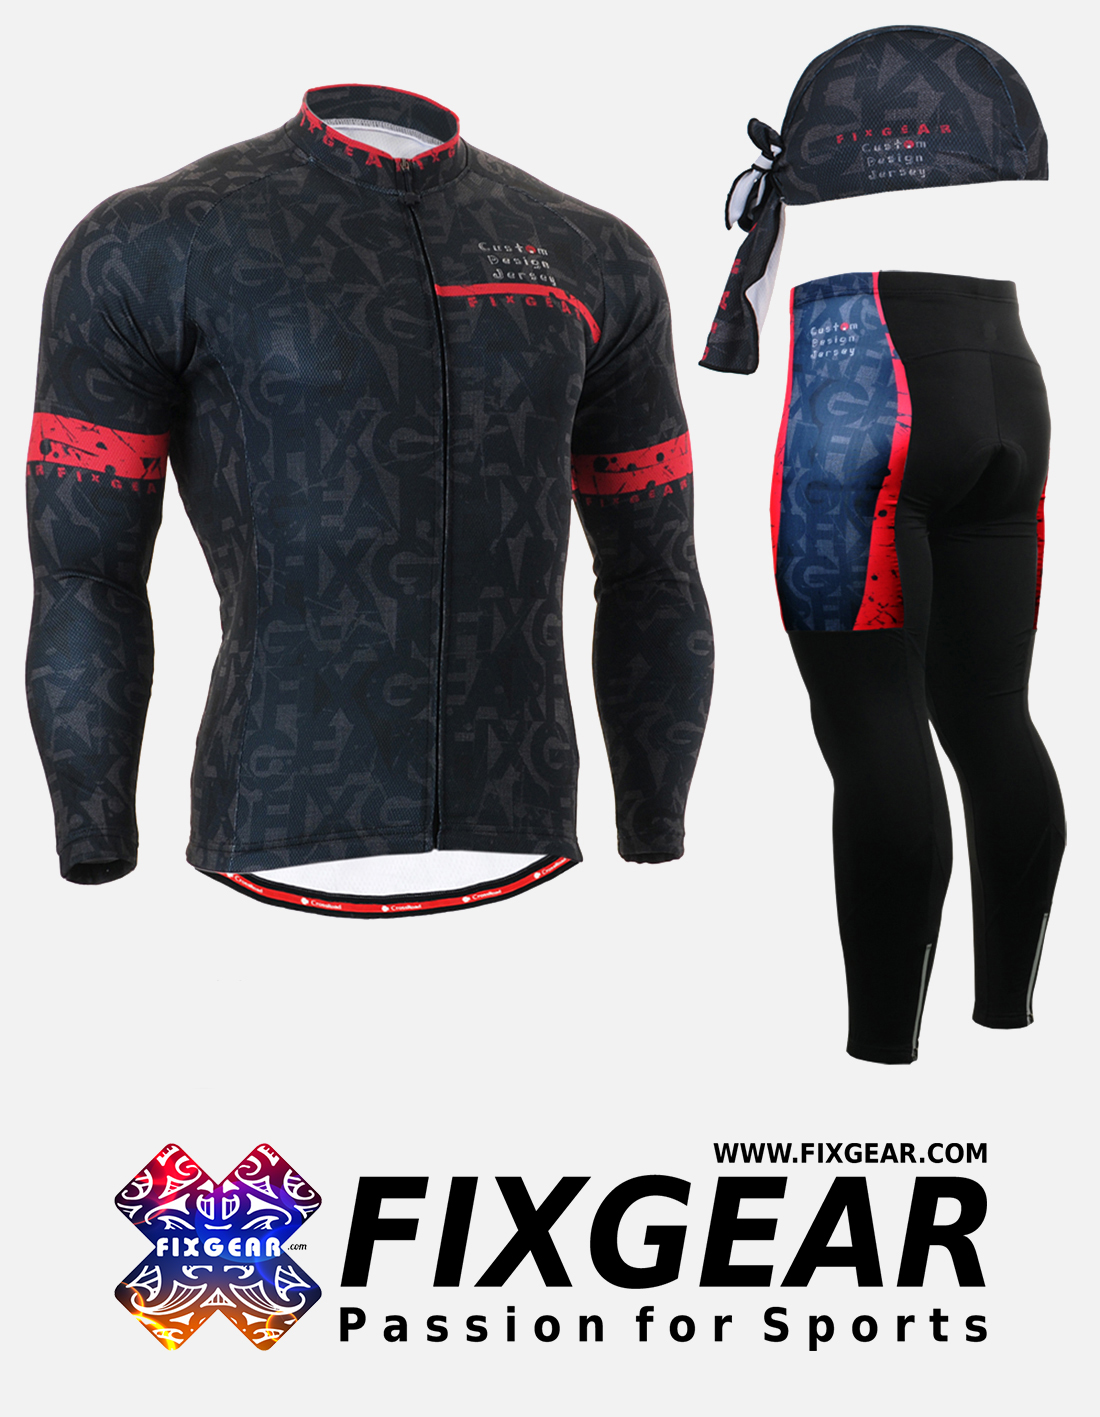 FIXGEAR CS-G601 Set Cycling Jerseys & Padded Pants